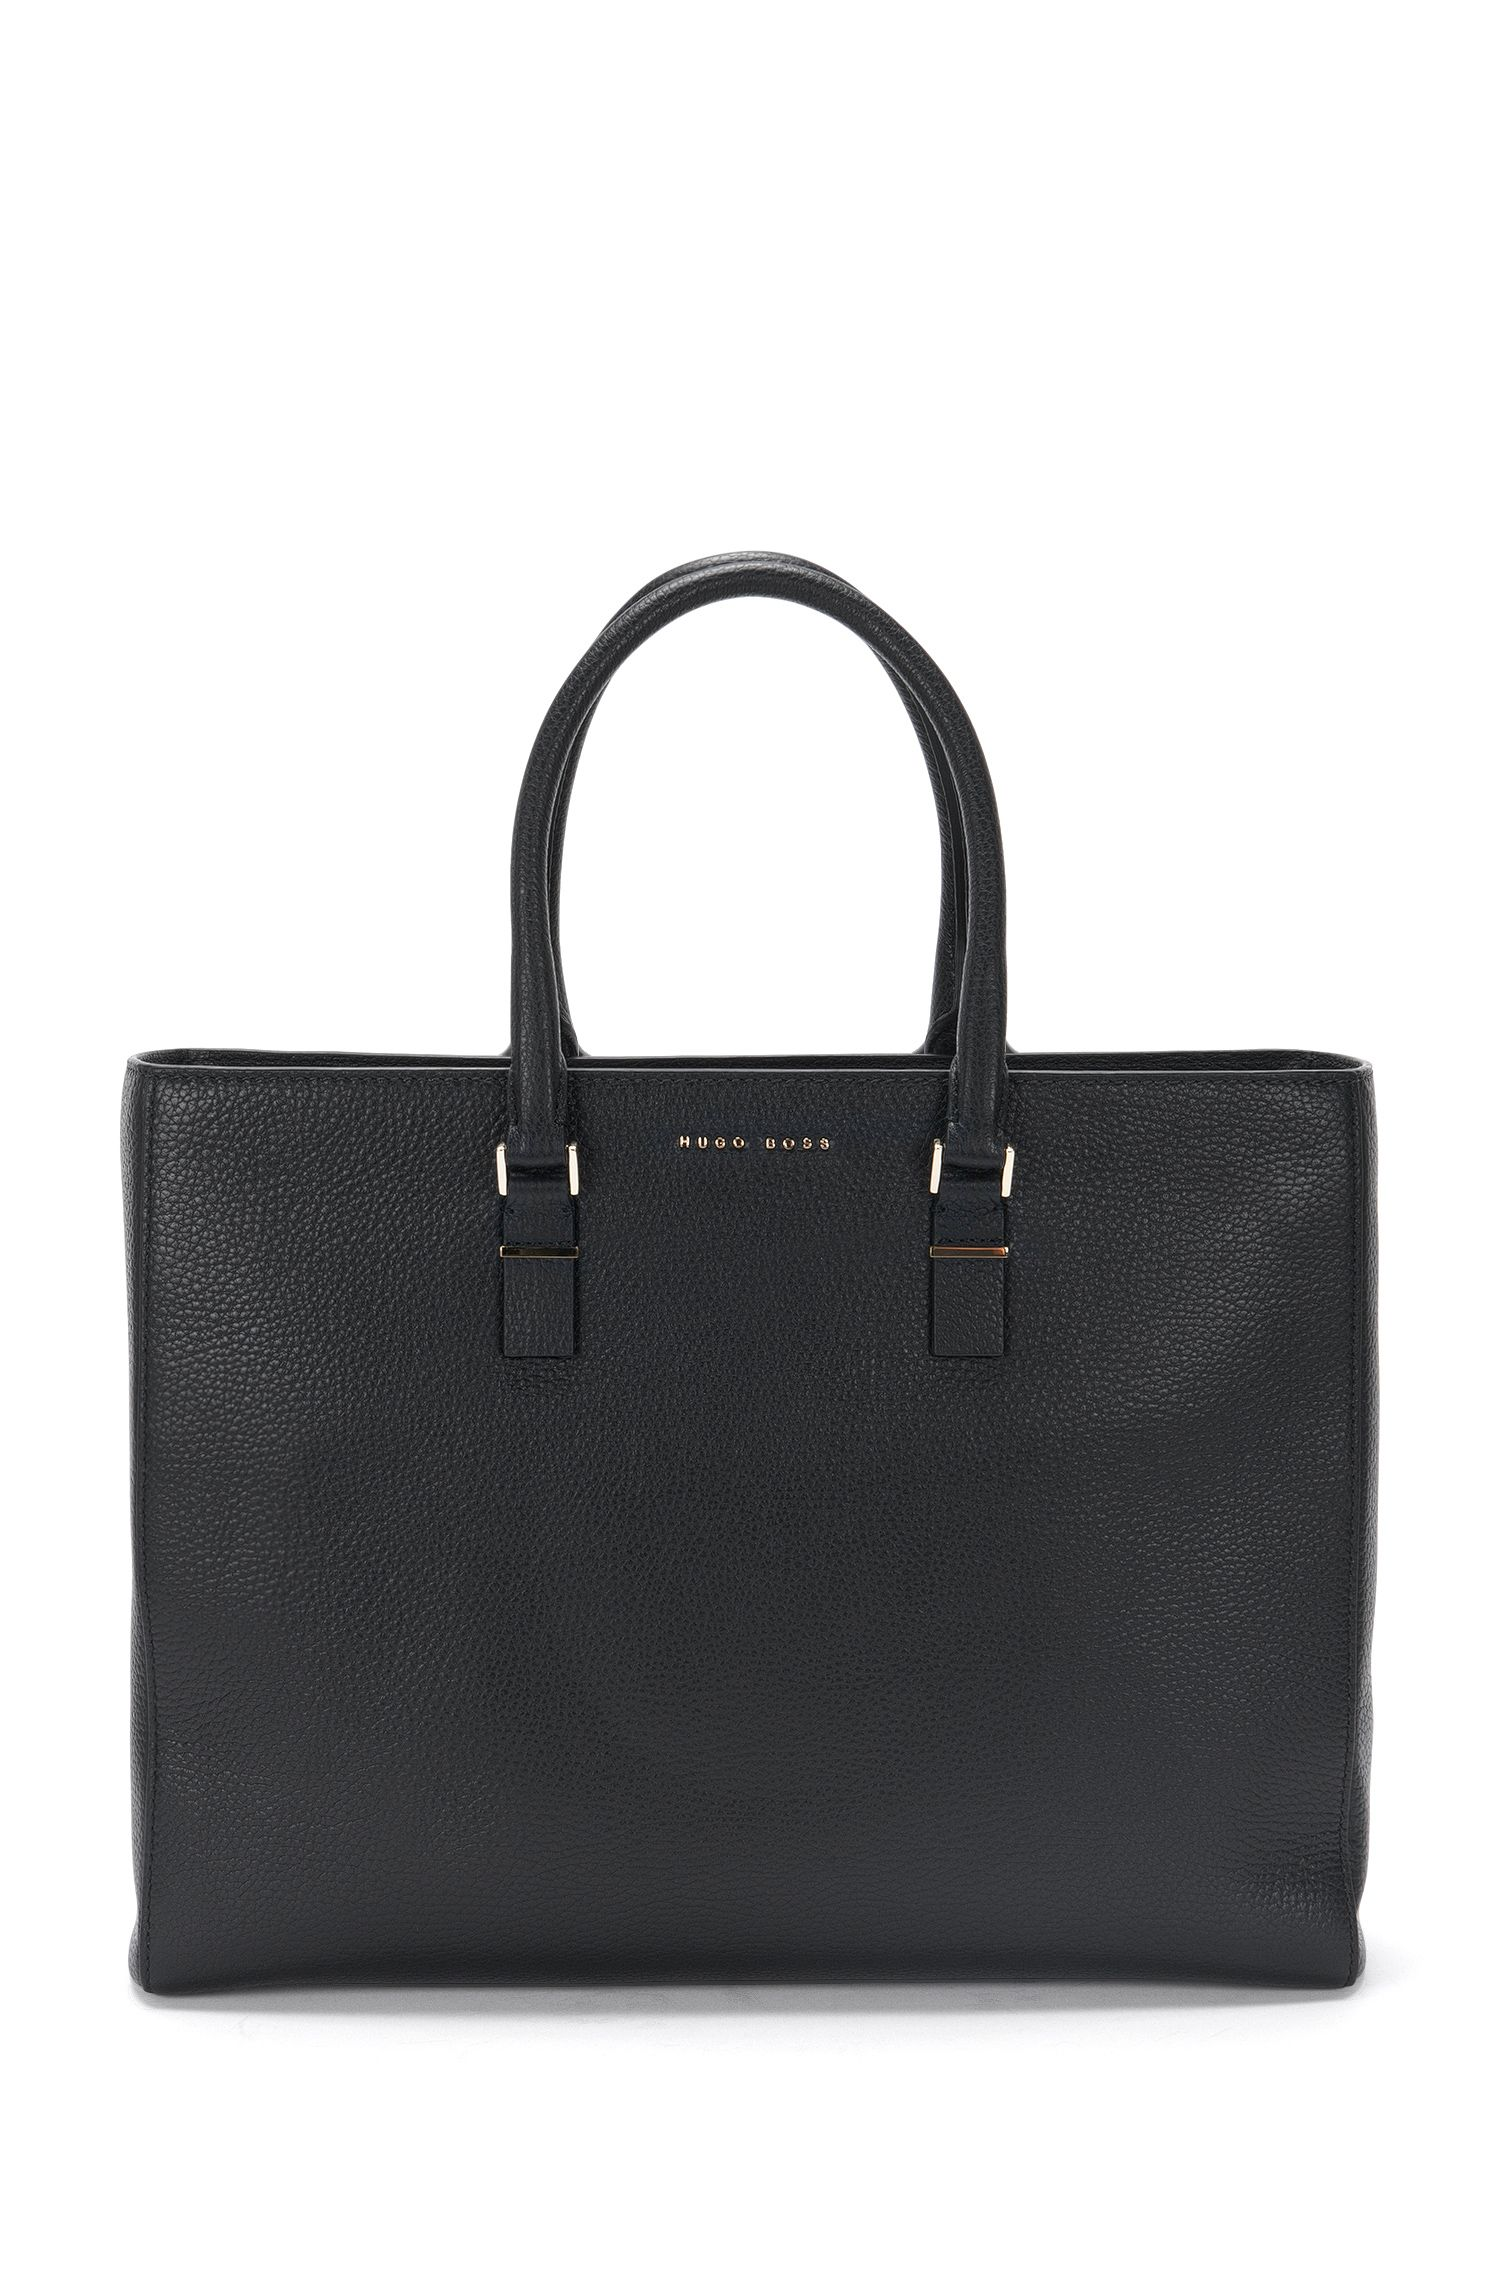 Sac de travail BOSS Luxury Staple, en cuir italien noble